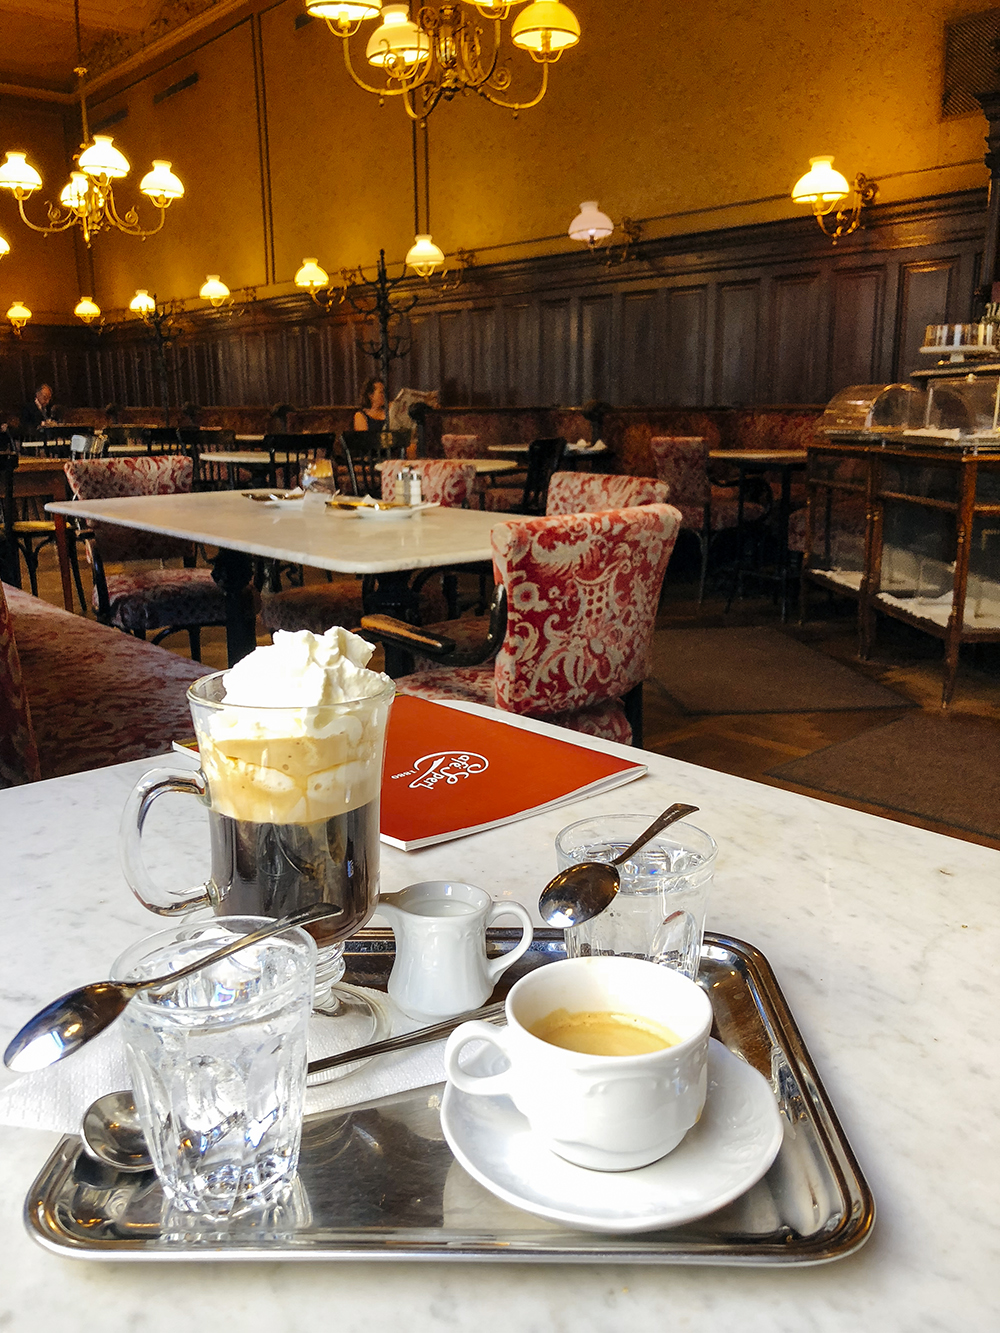 Viennese Coffee at Cafe Sperl